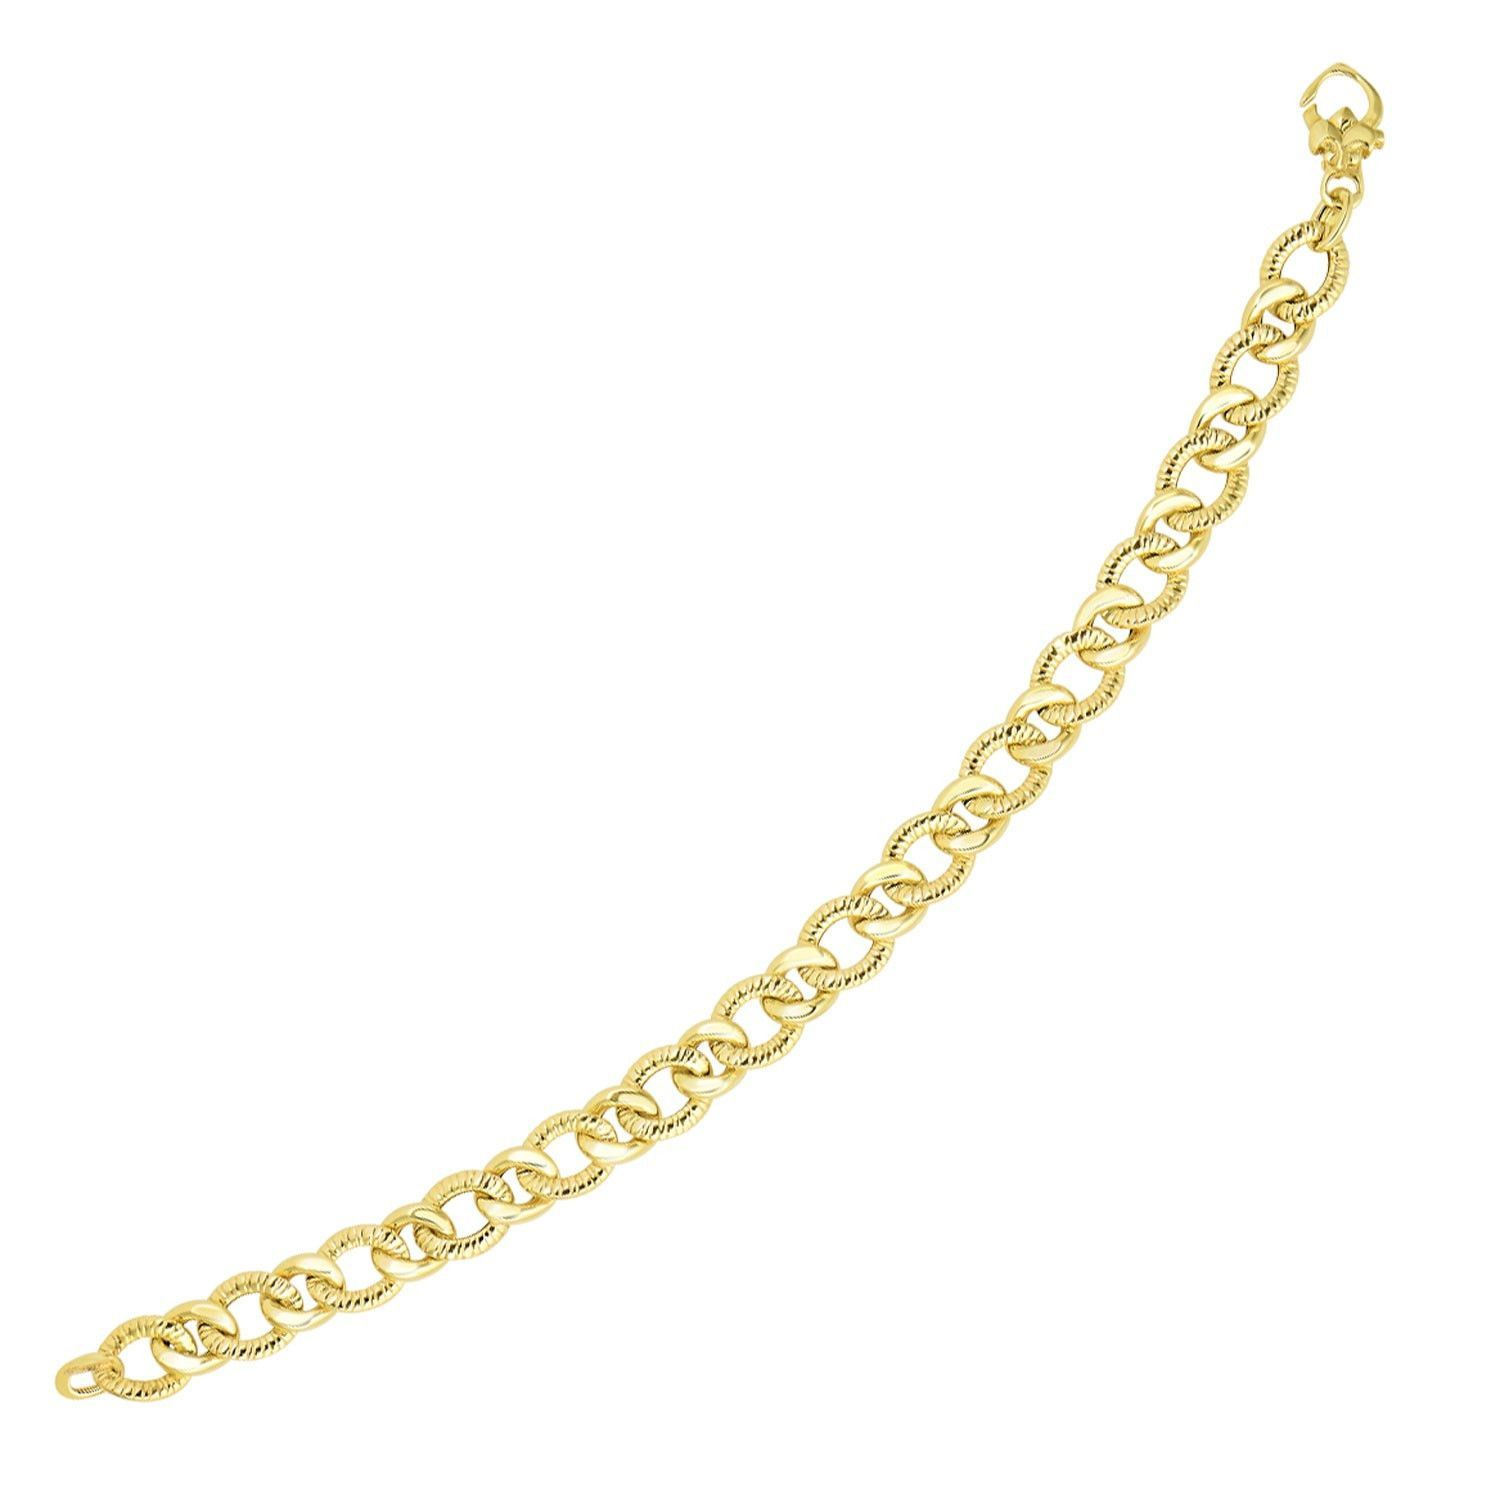 K yellow gold curb chain design with diamond cuts bracelet